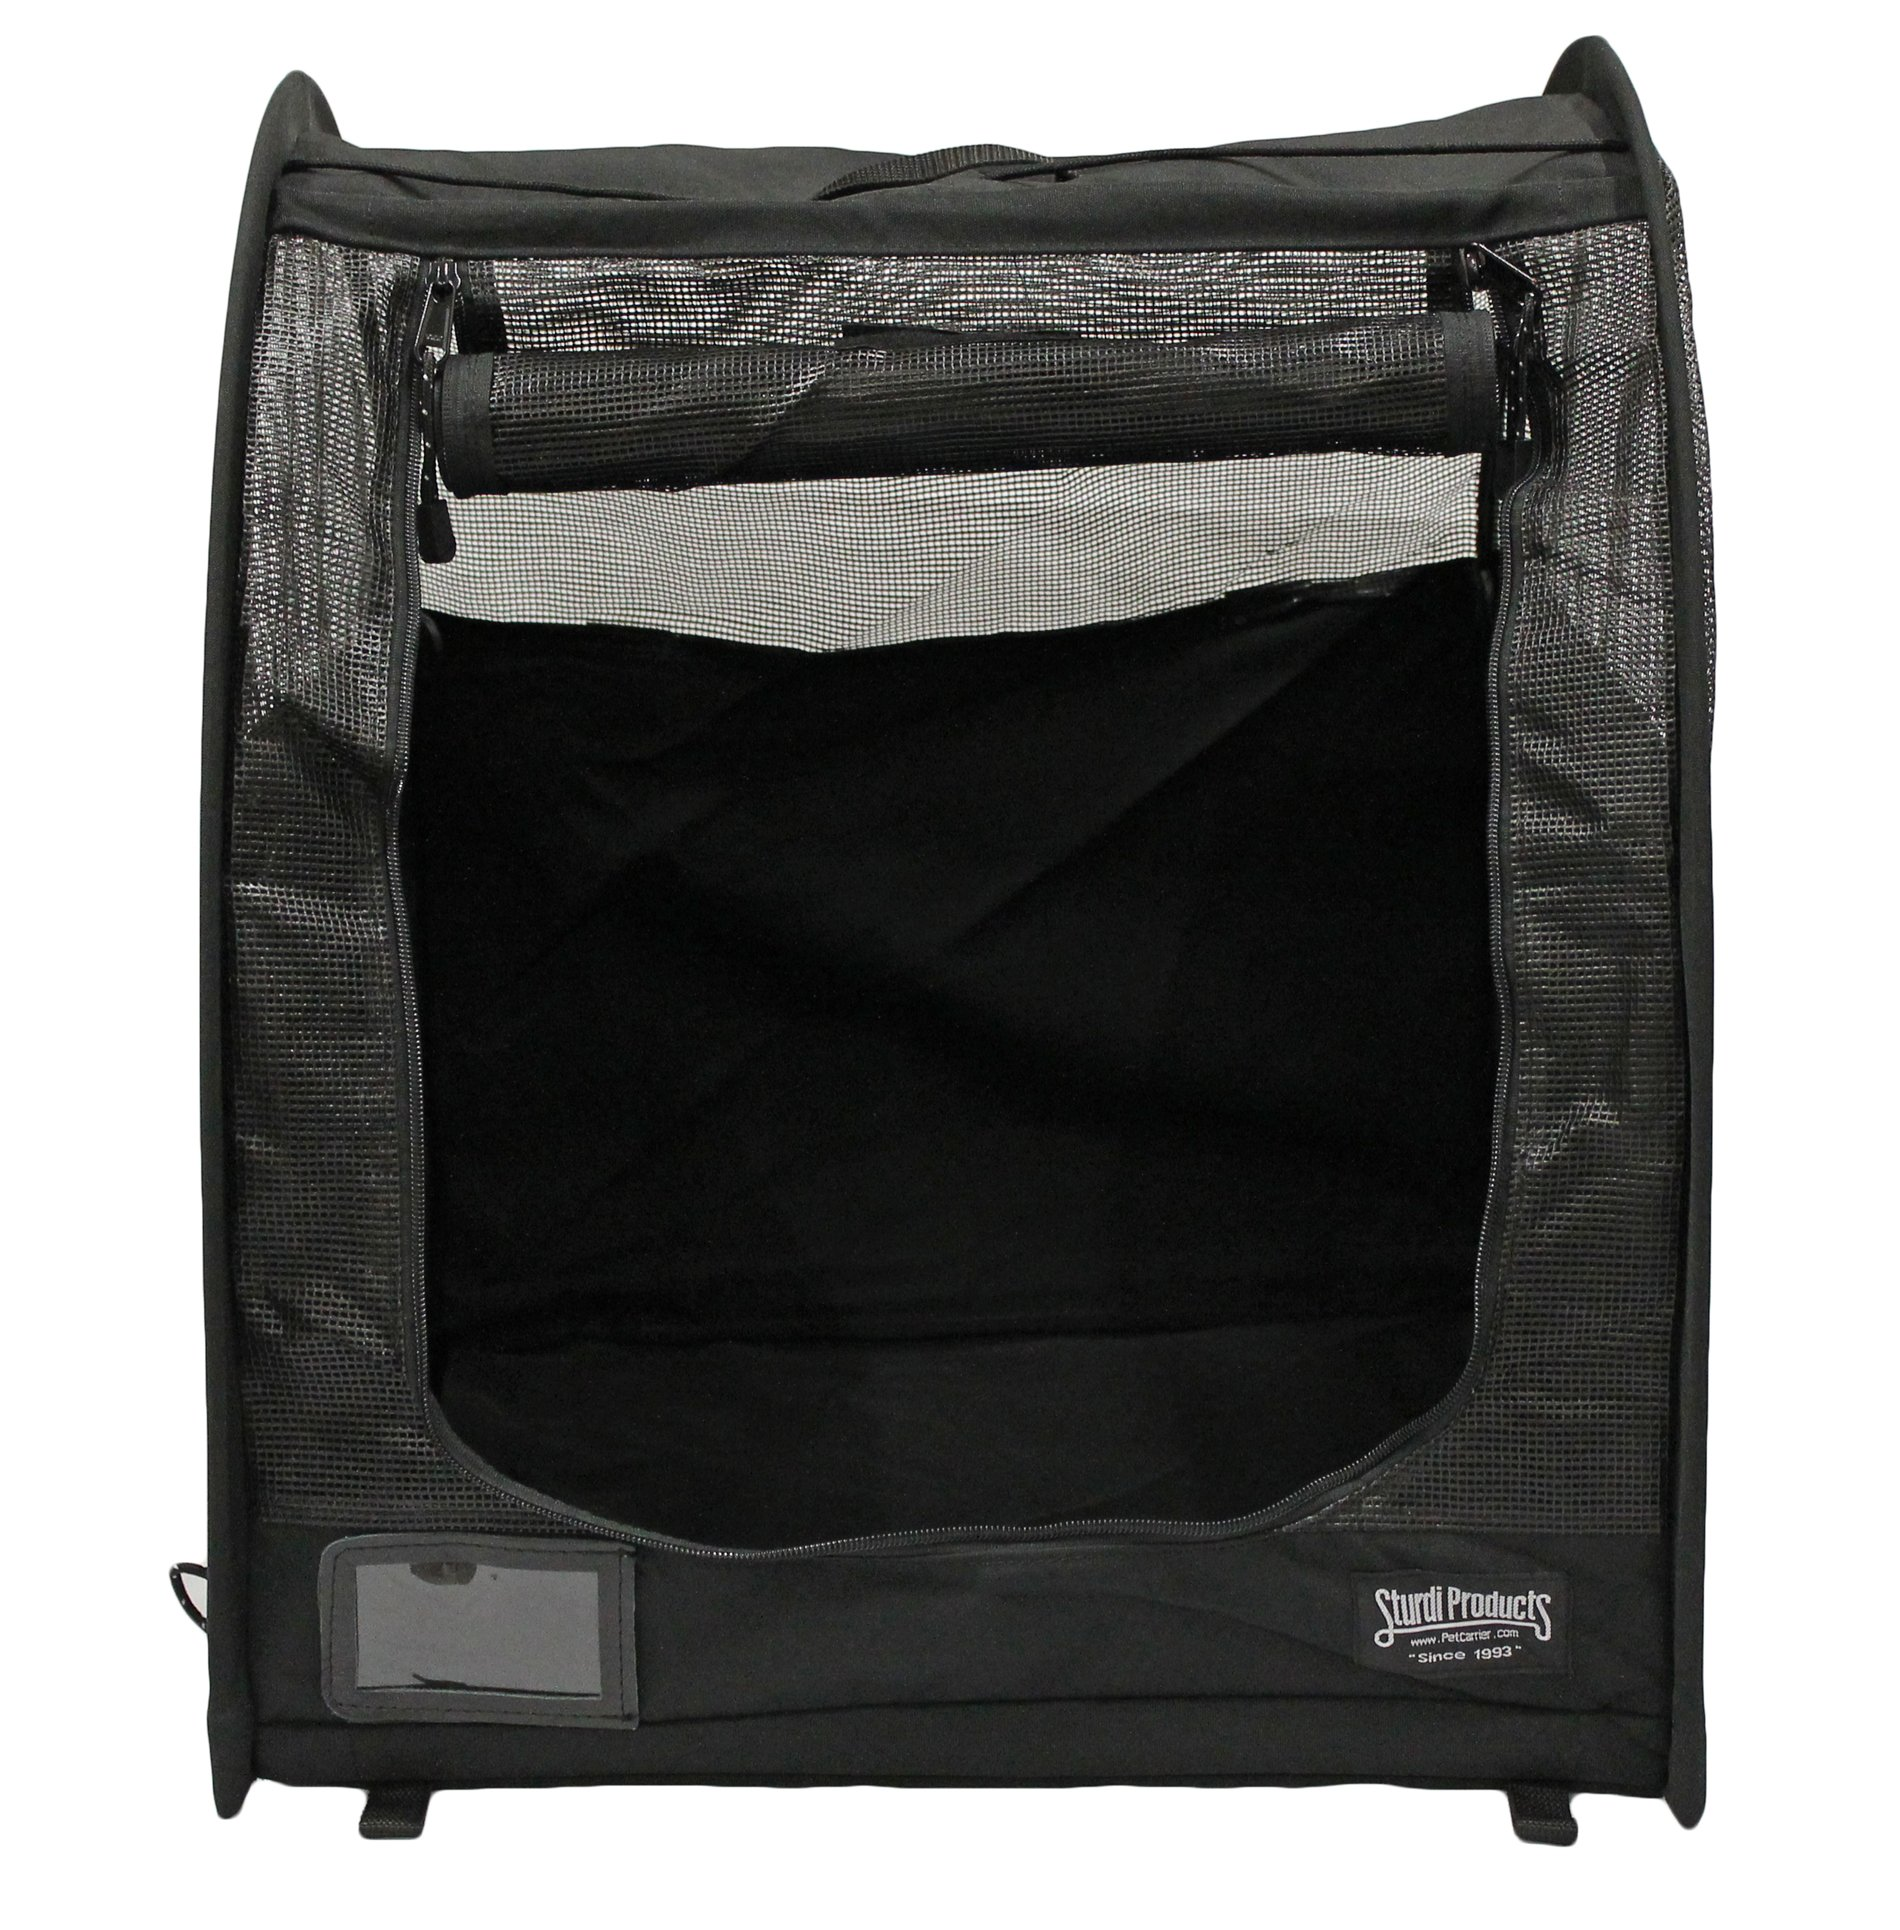 Sturdi Products Car-Go Single Pop-Up Pet Shelter, Black